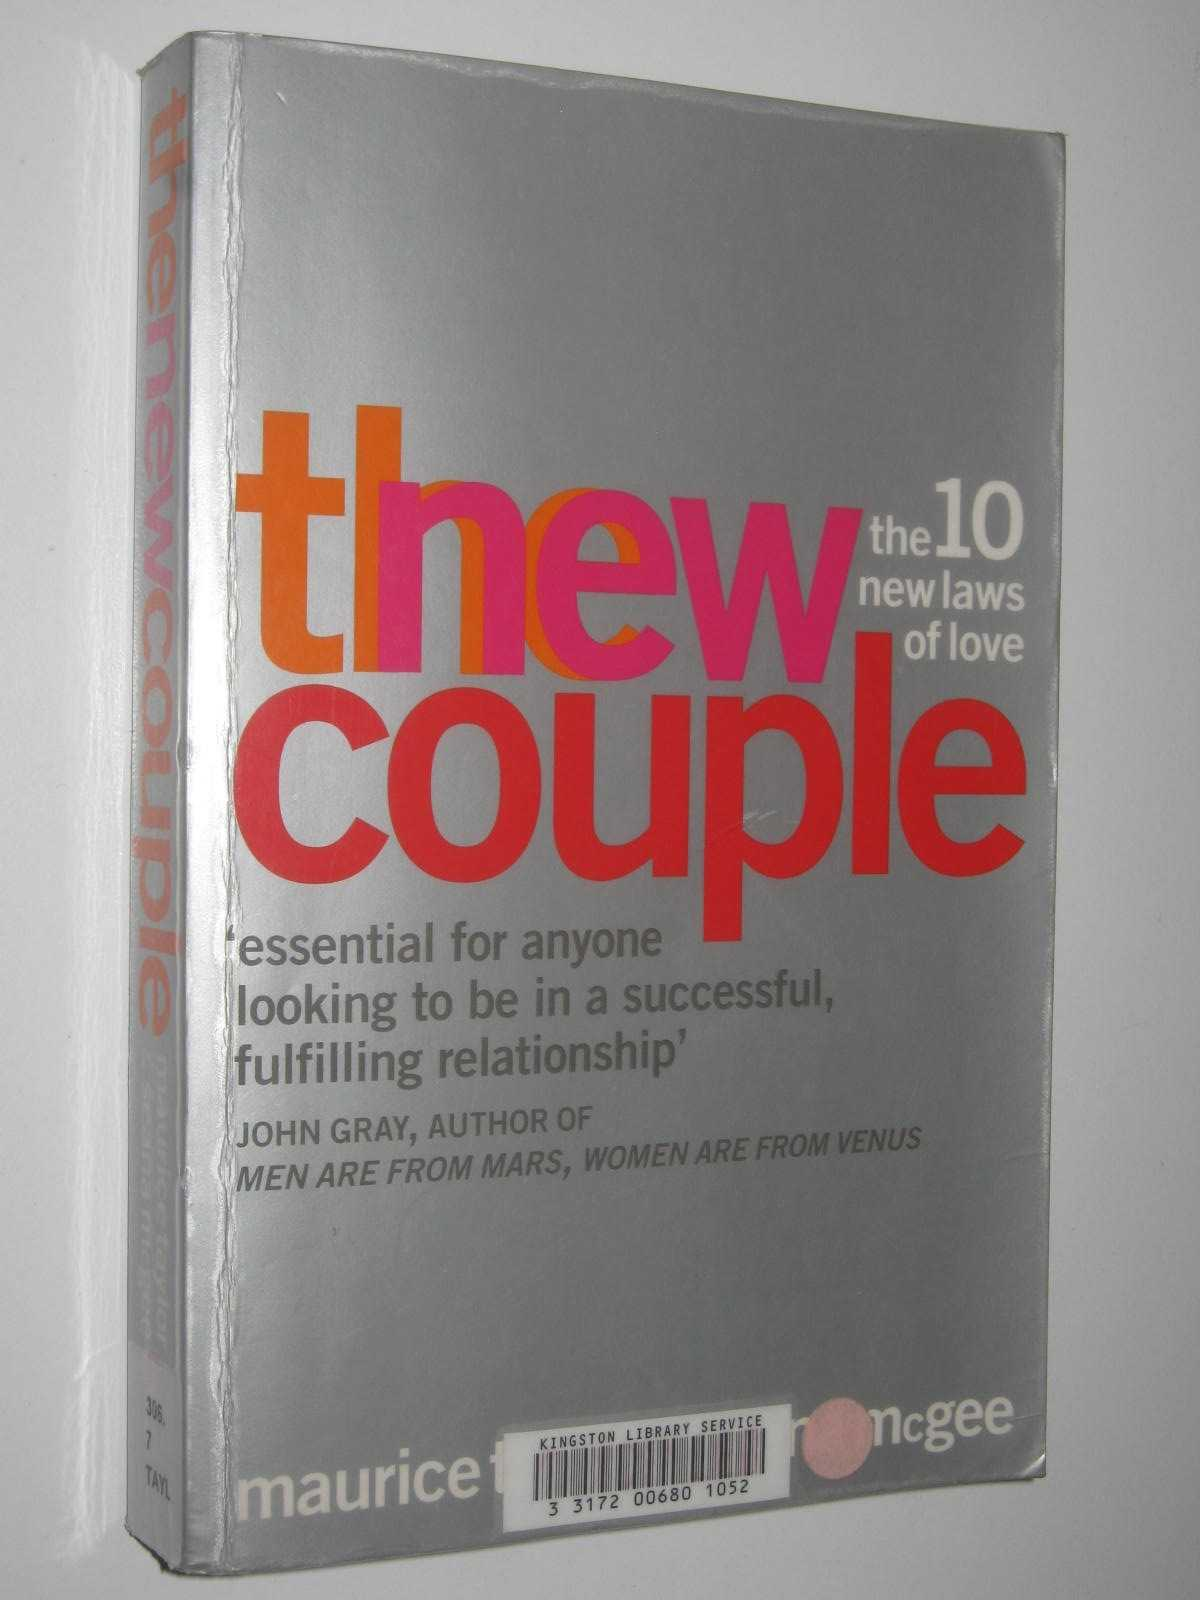 Image for The New Couple: The 10 New Laws Love